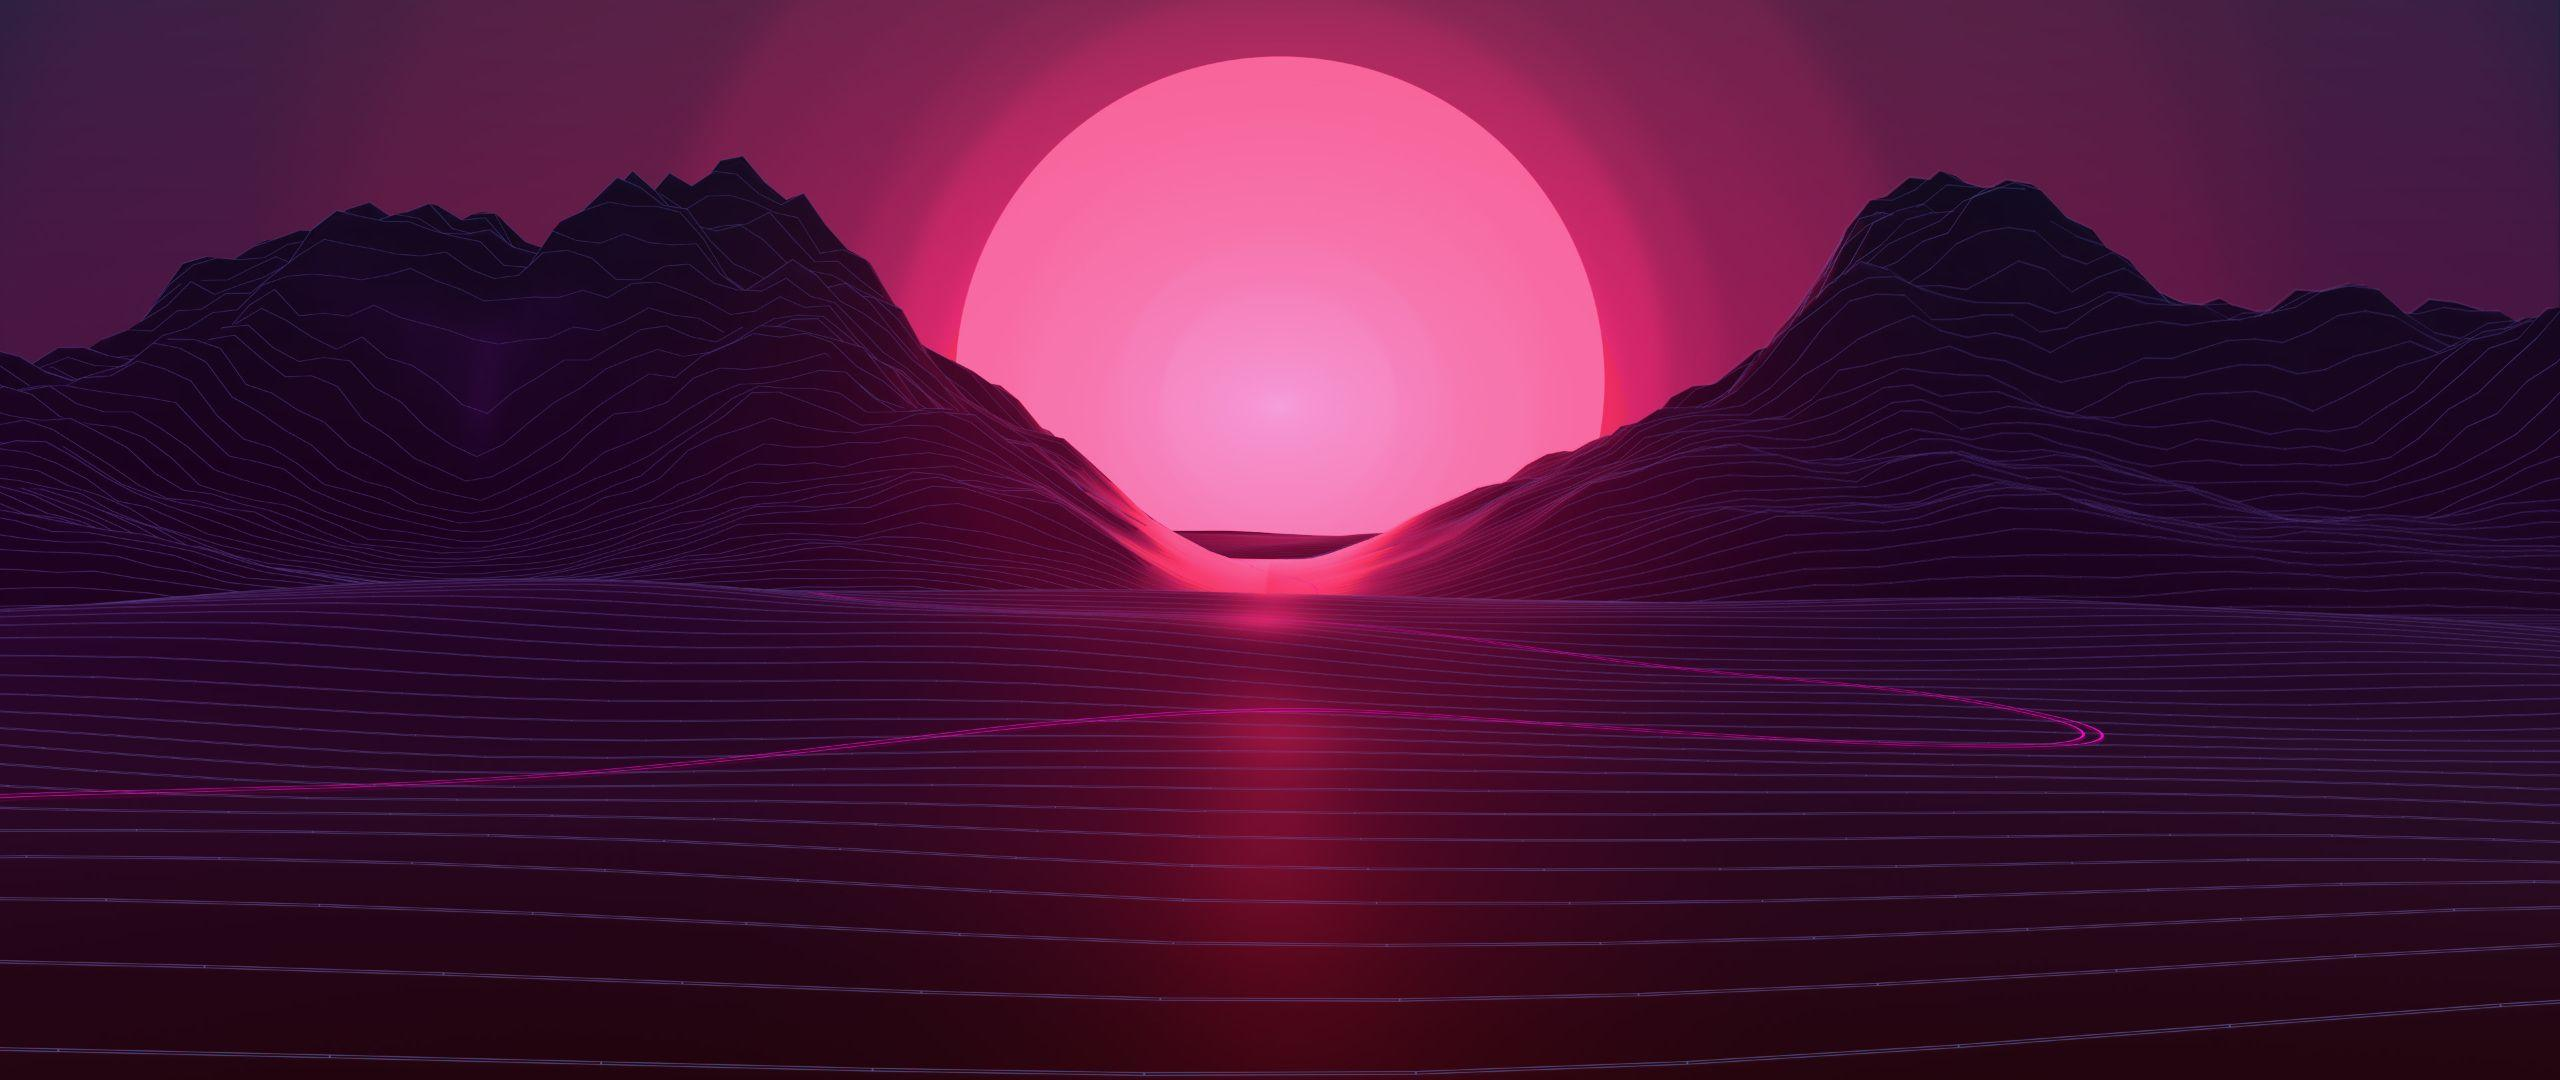 Download Sun In Retro Wave Mountains 1440x900 Resolution, HD 4K